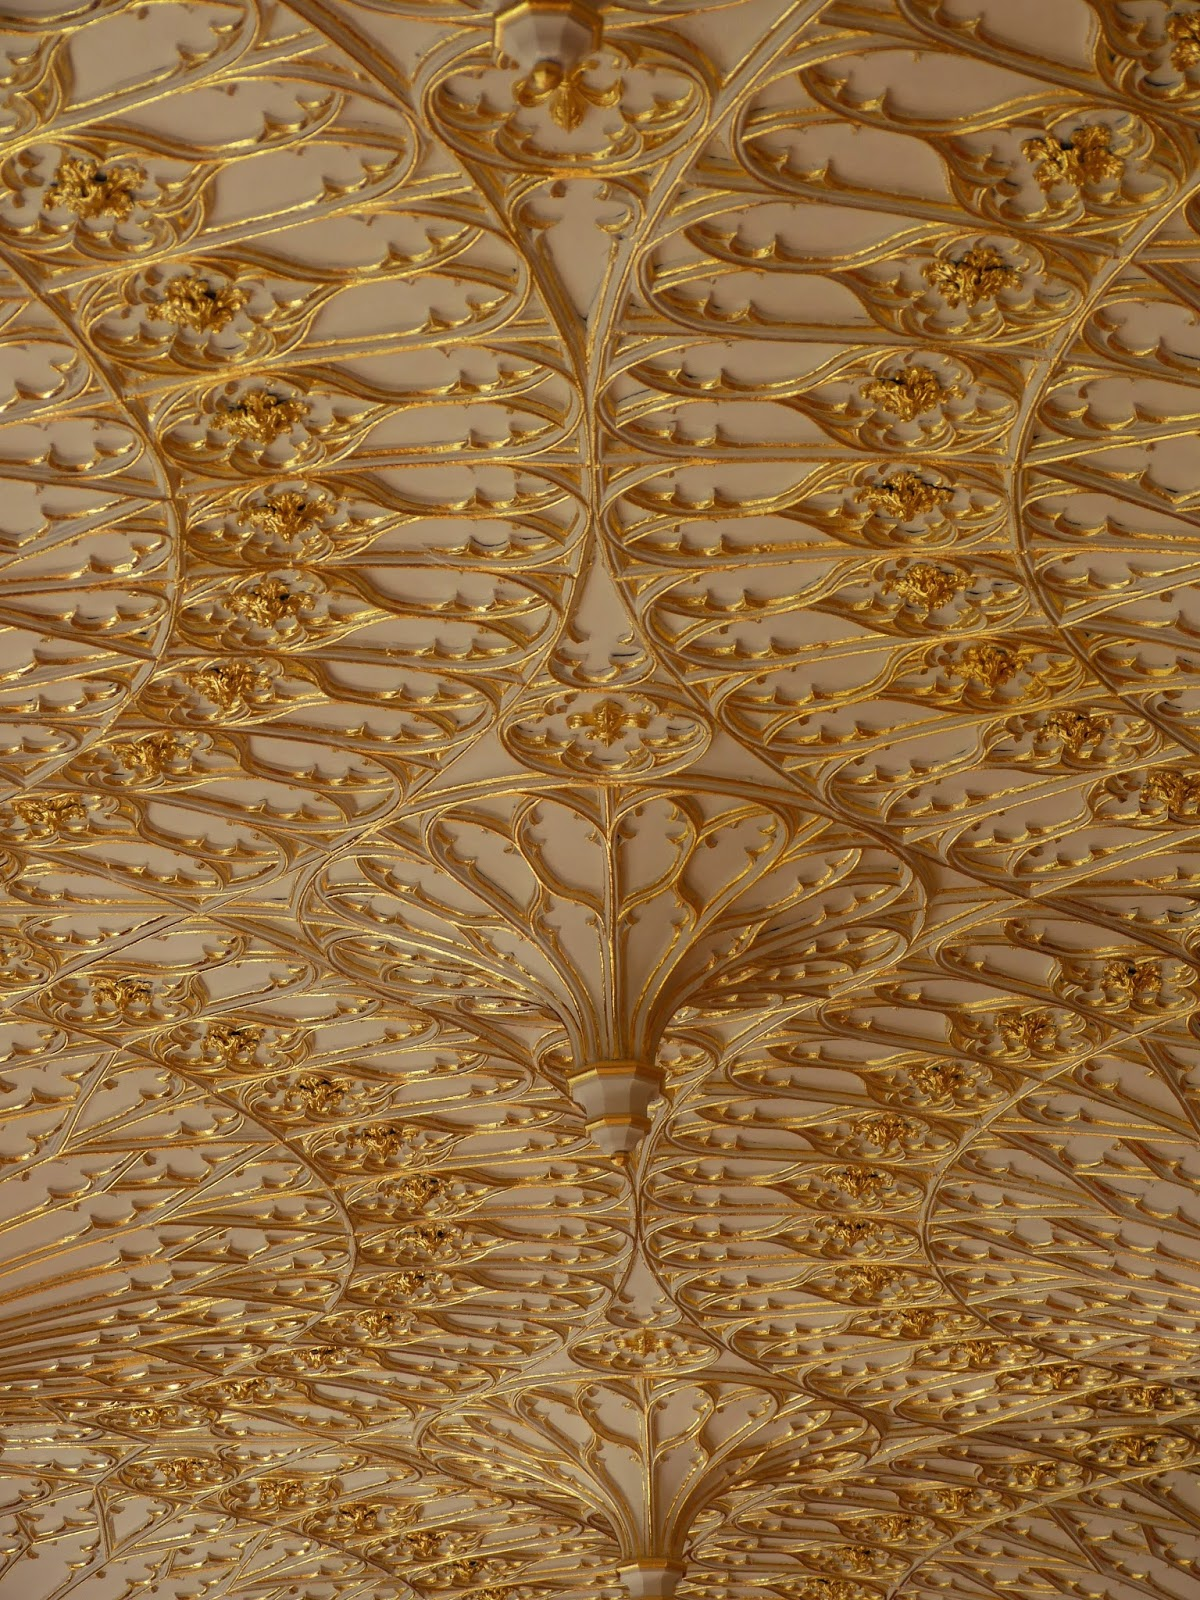 The ceiling in The Gallery, Strawberry Hill